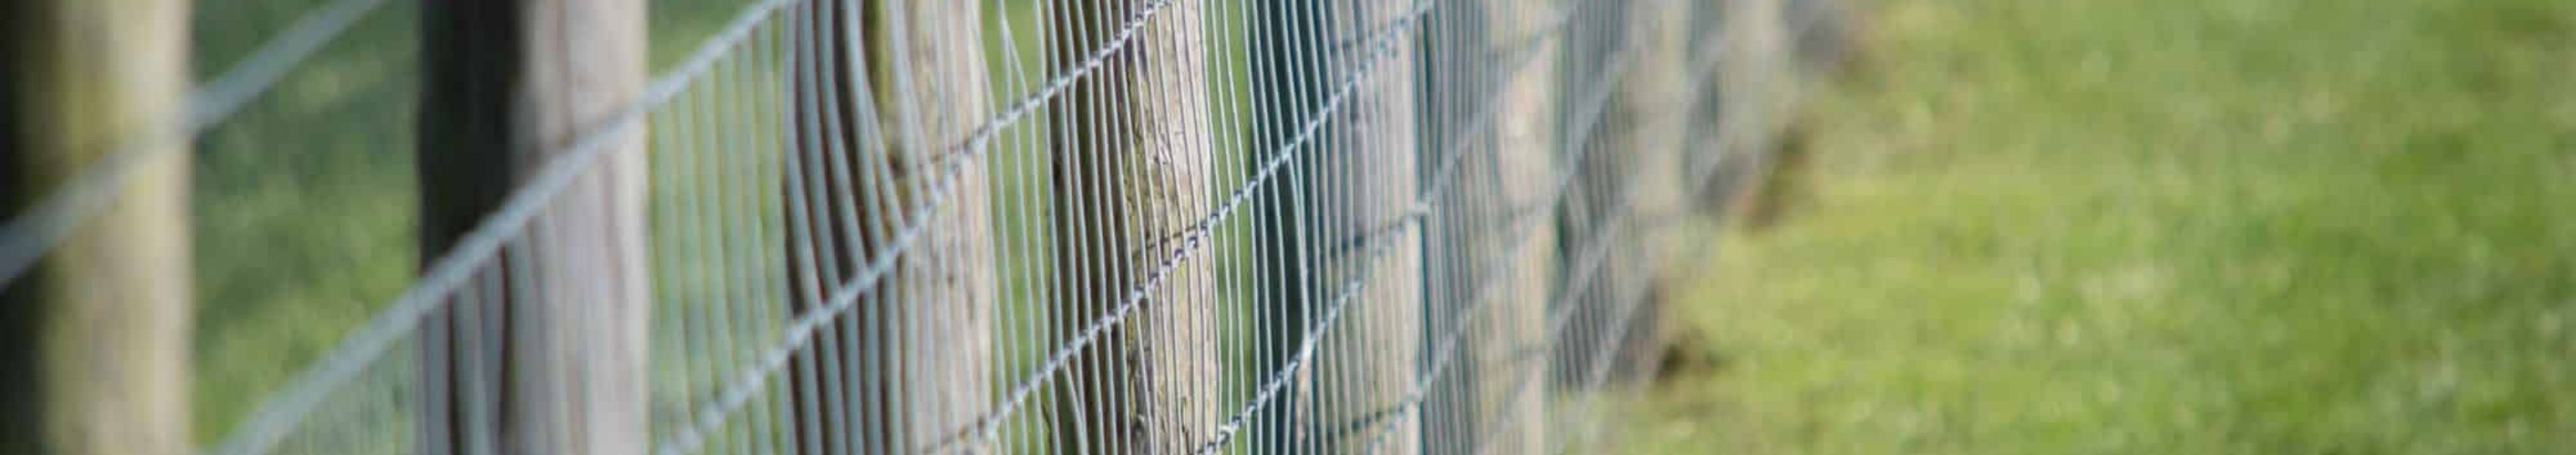 Wire Fencing Roll